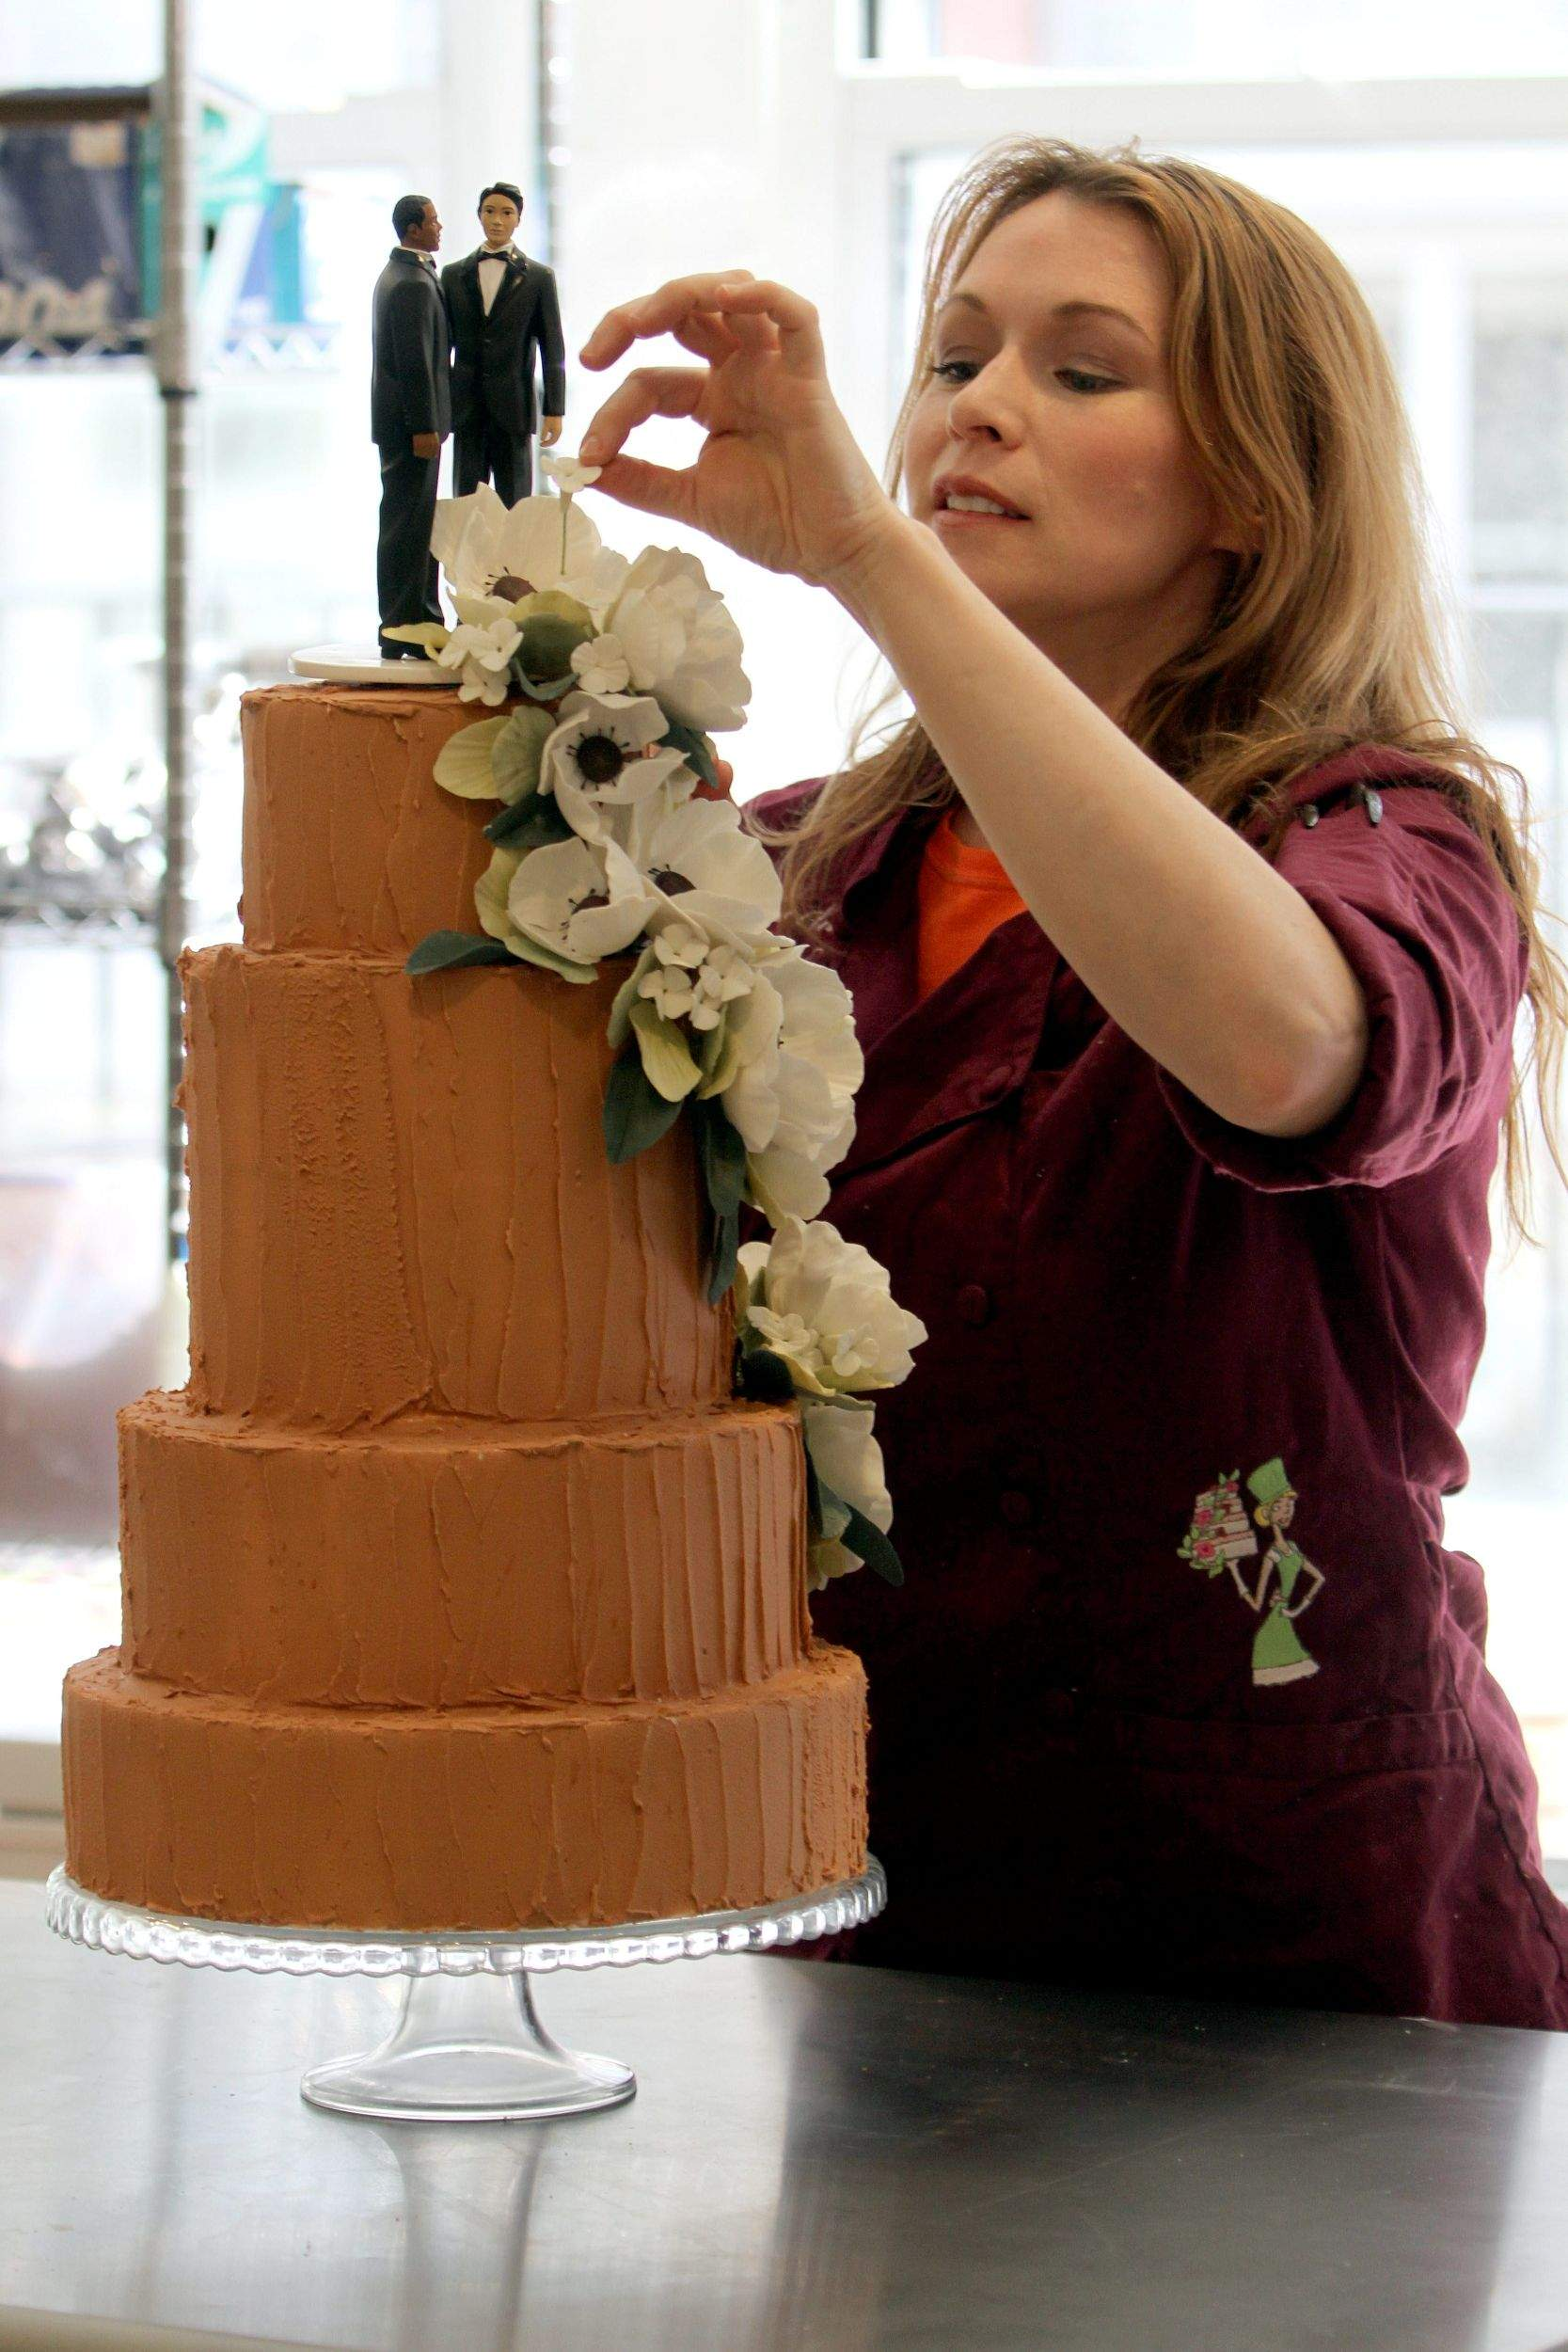 Amy DeGiulio Owner Of Sugar Flower Cake Shop Decorates A White With Strawberry Buttercream Filling And Chocolate Icing In New York